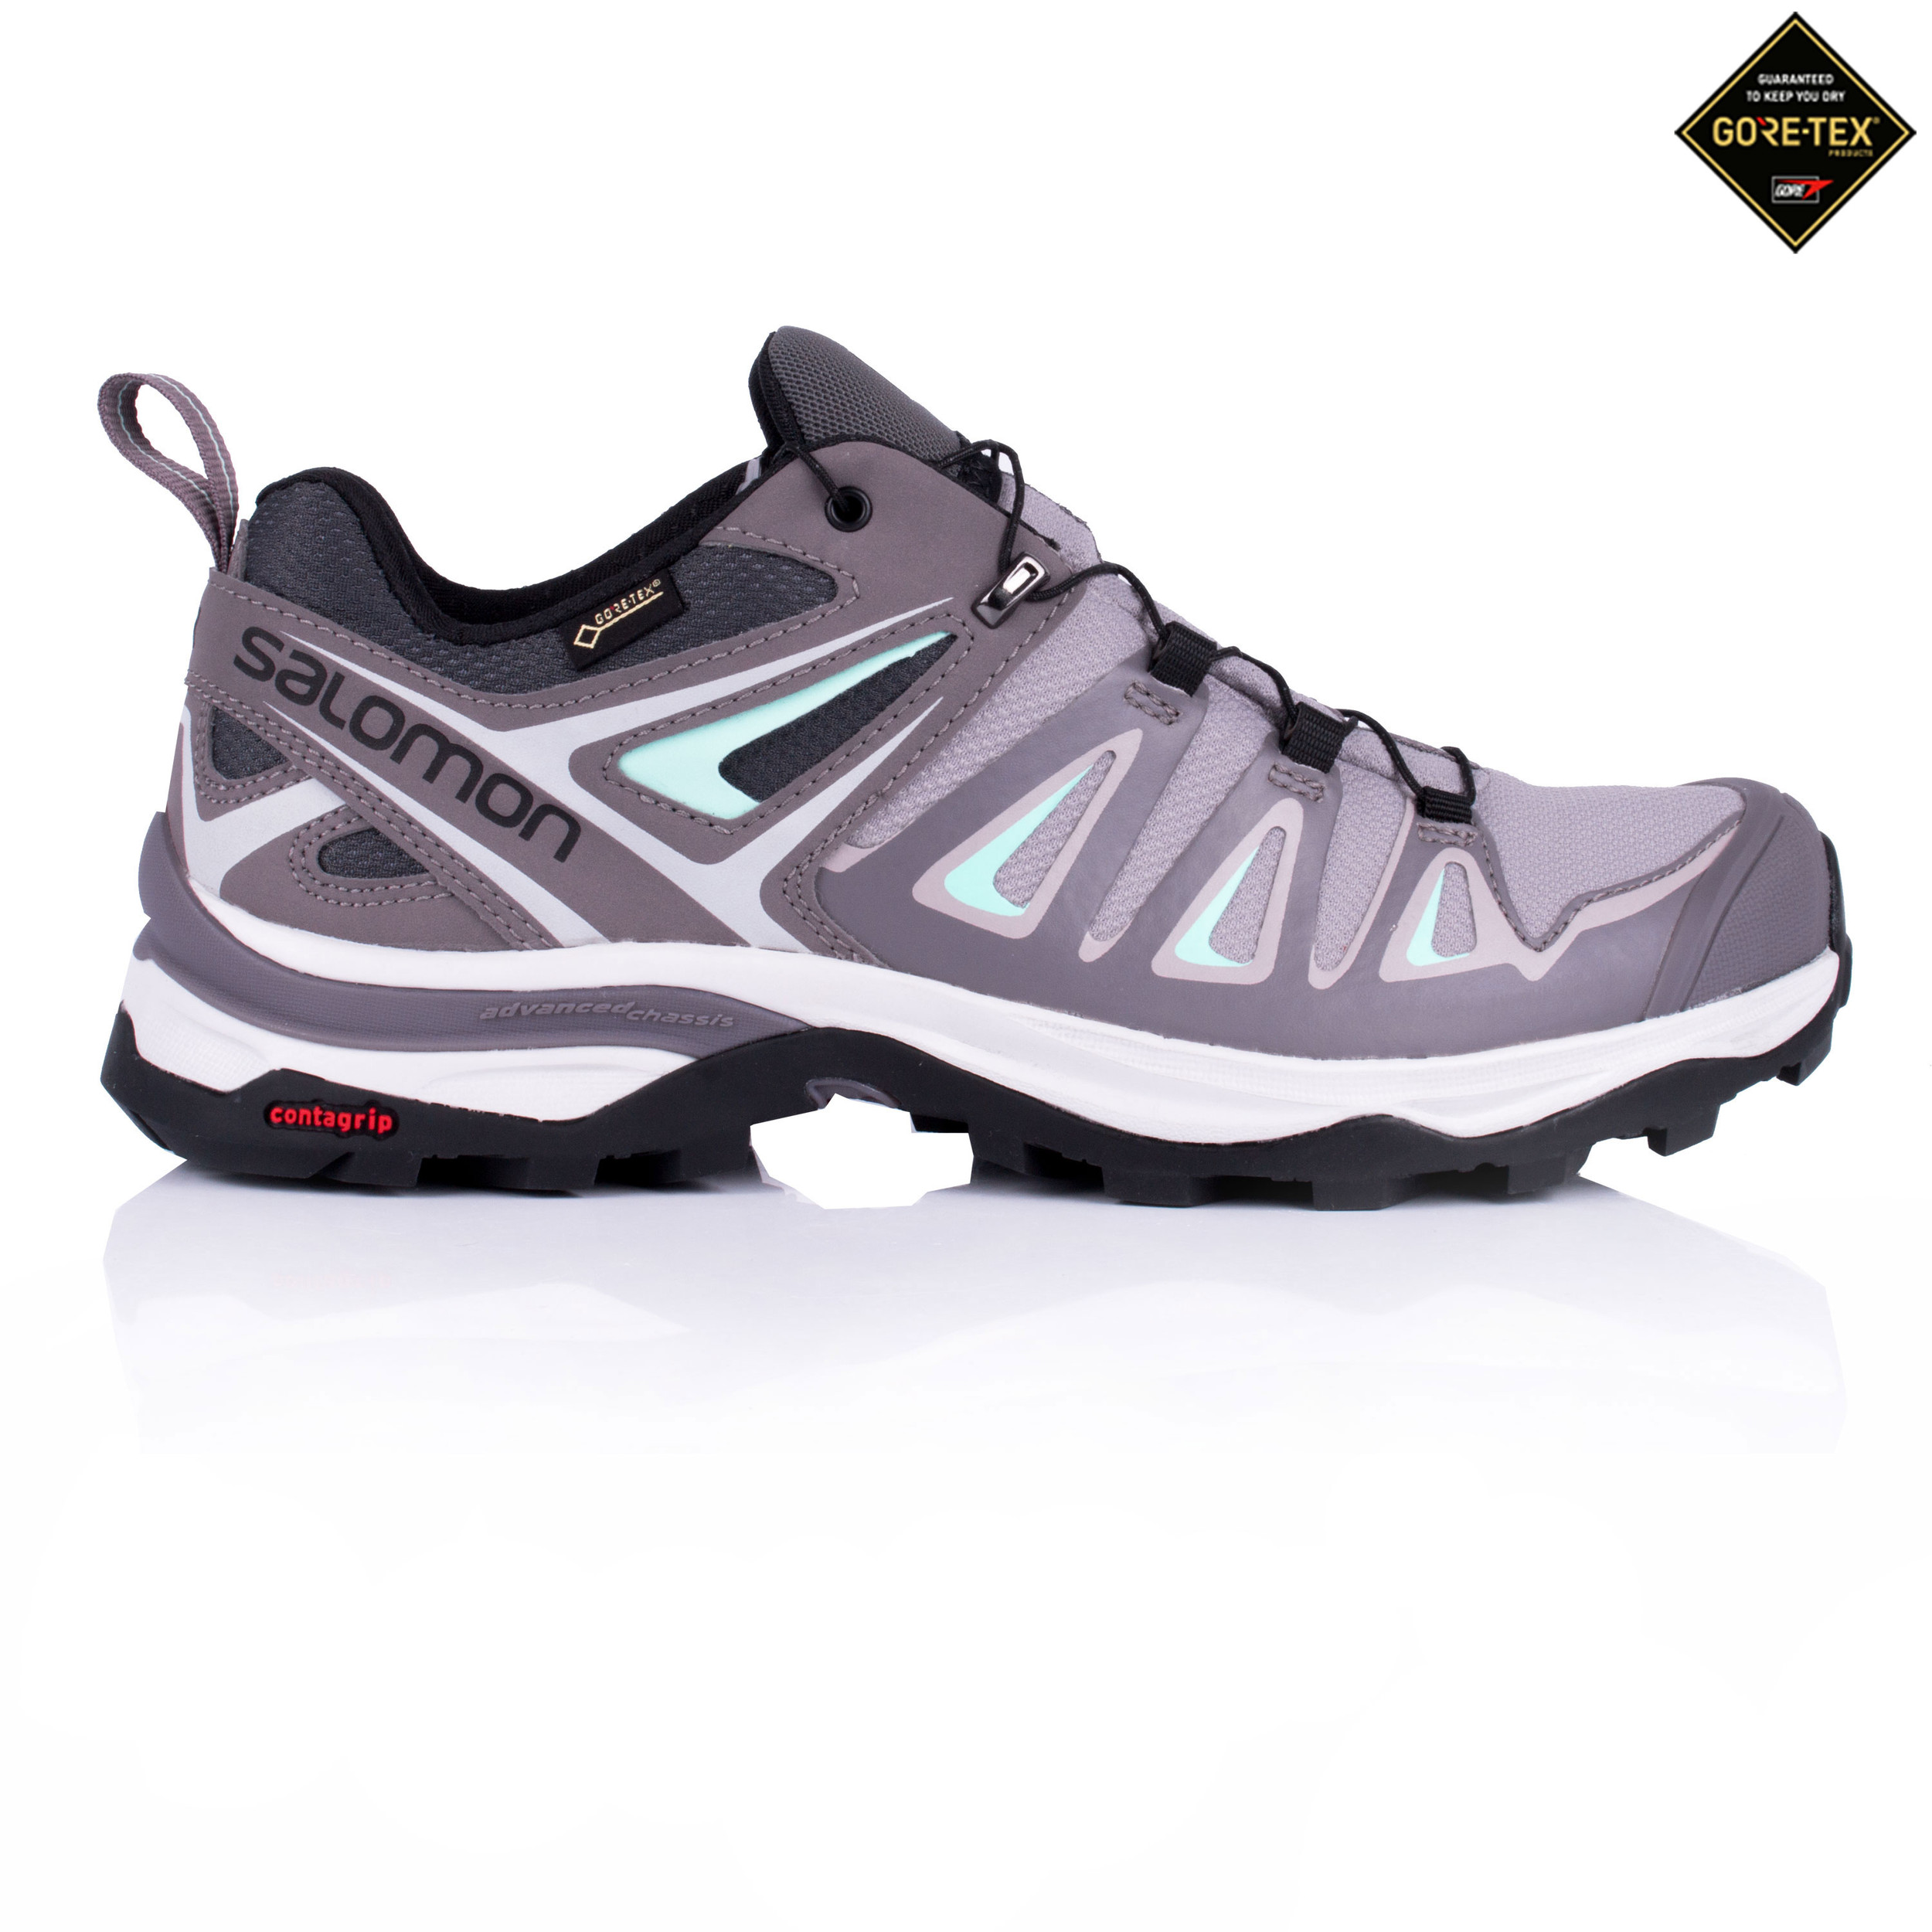 Details about Salomon Womens X Ultra 3 Gore Tex Walking Shoe Grey Sports Outdoors Trainers